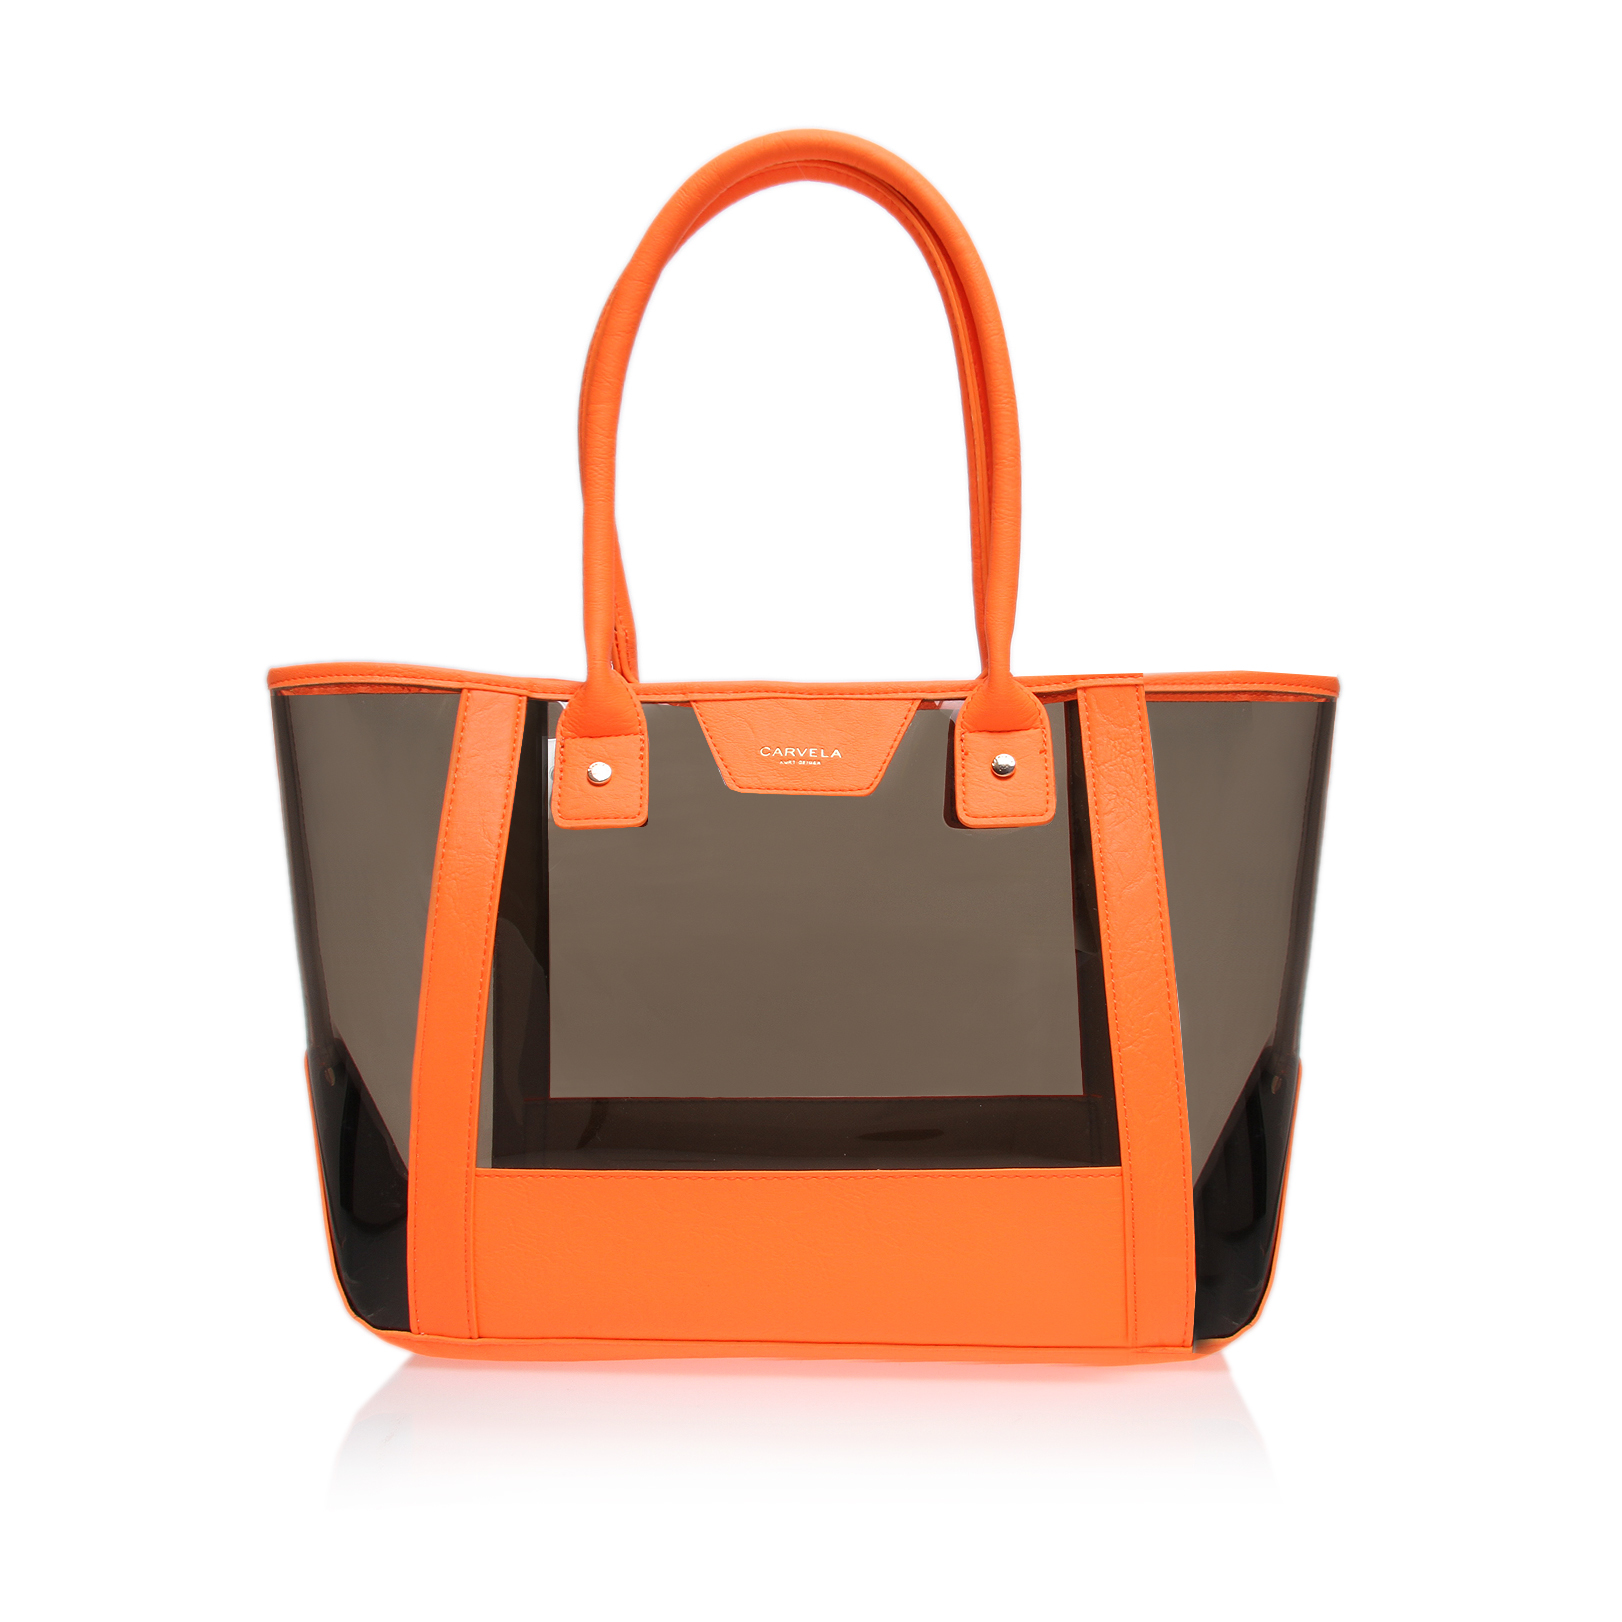 FREYA PERSPEX SHOPPER